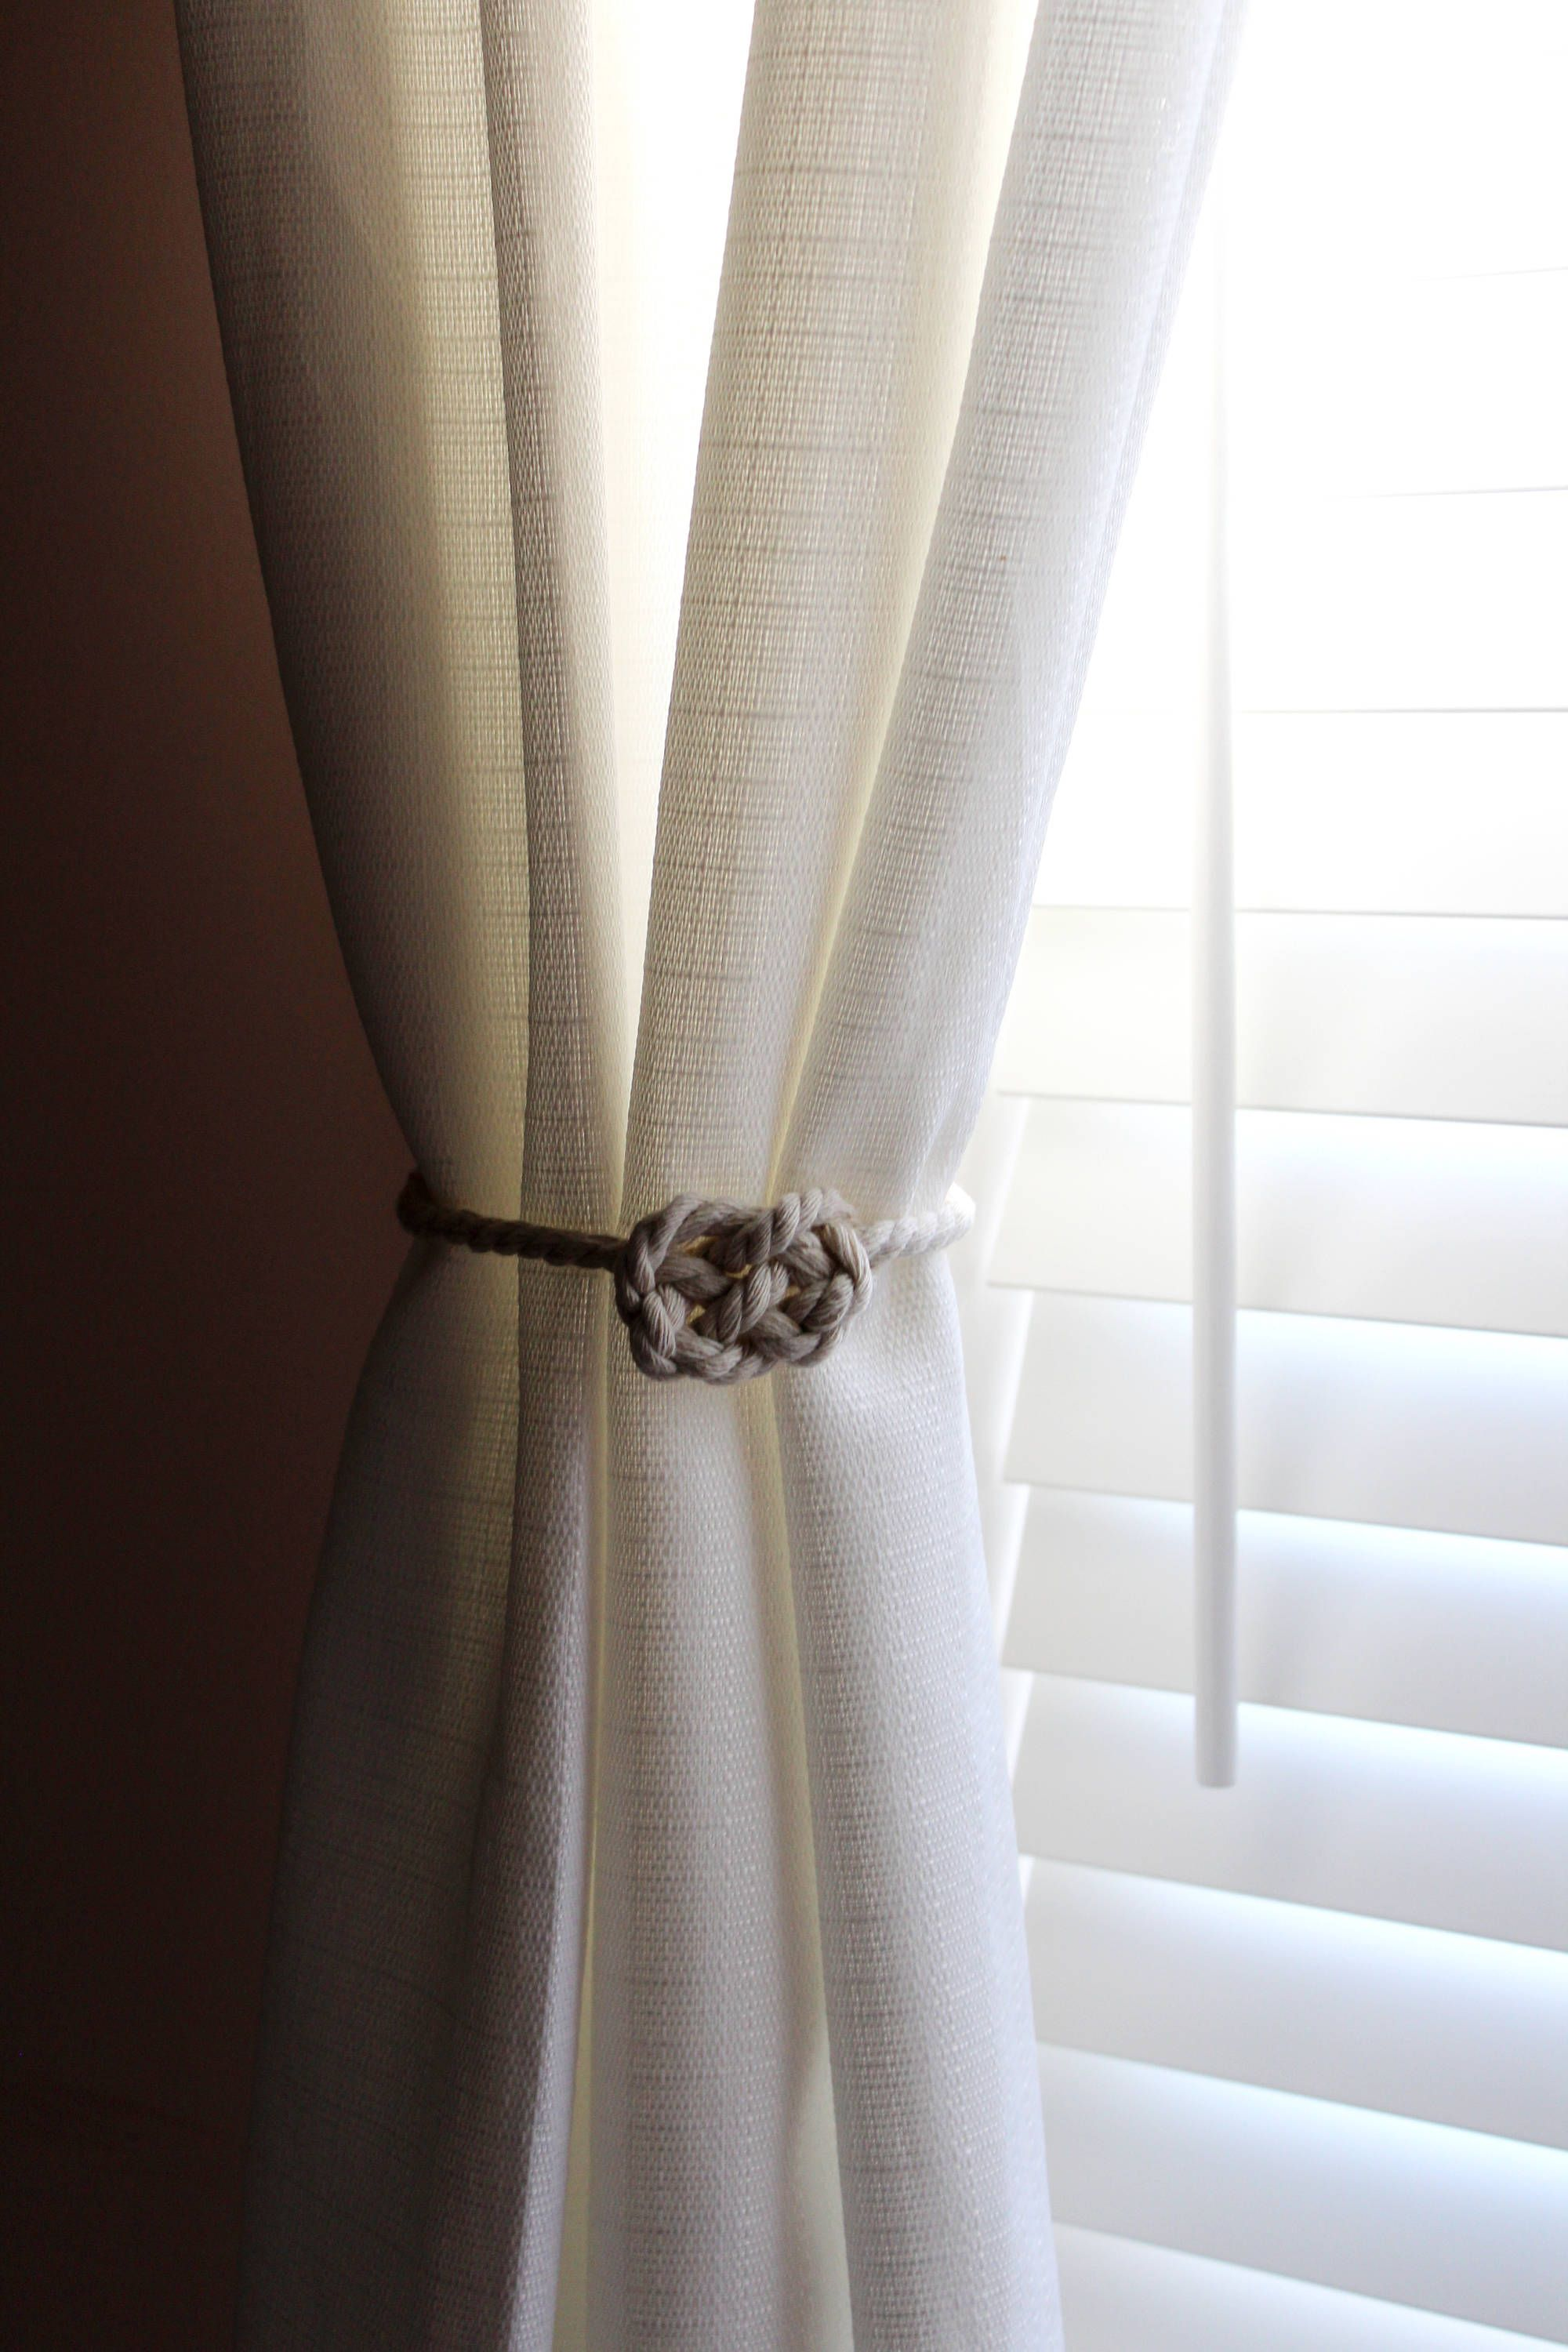 Rustic And Nautical Natural Cotton Thread Curtain Tie Back By Alisaartstudio On Etsy